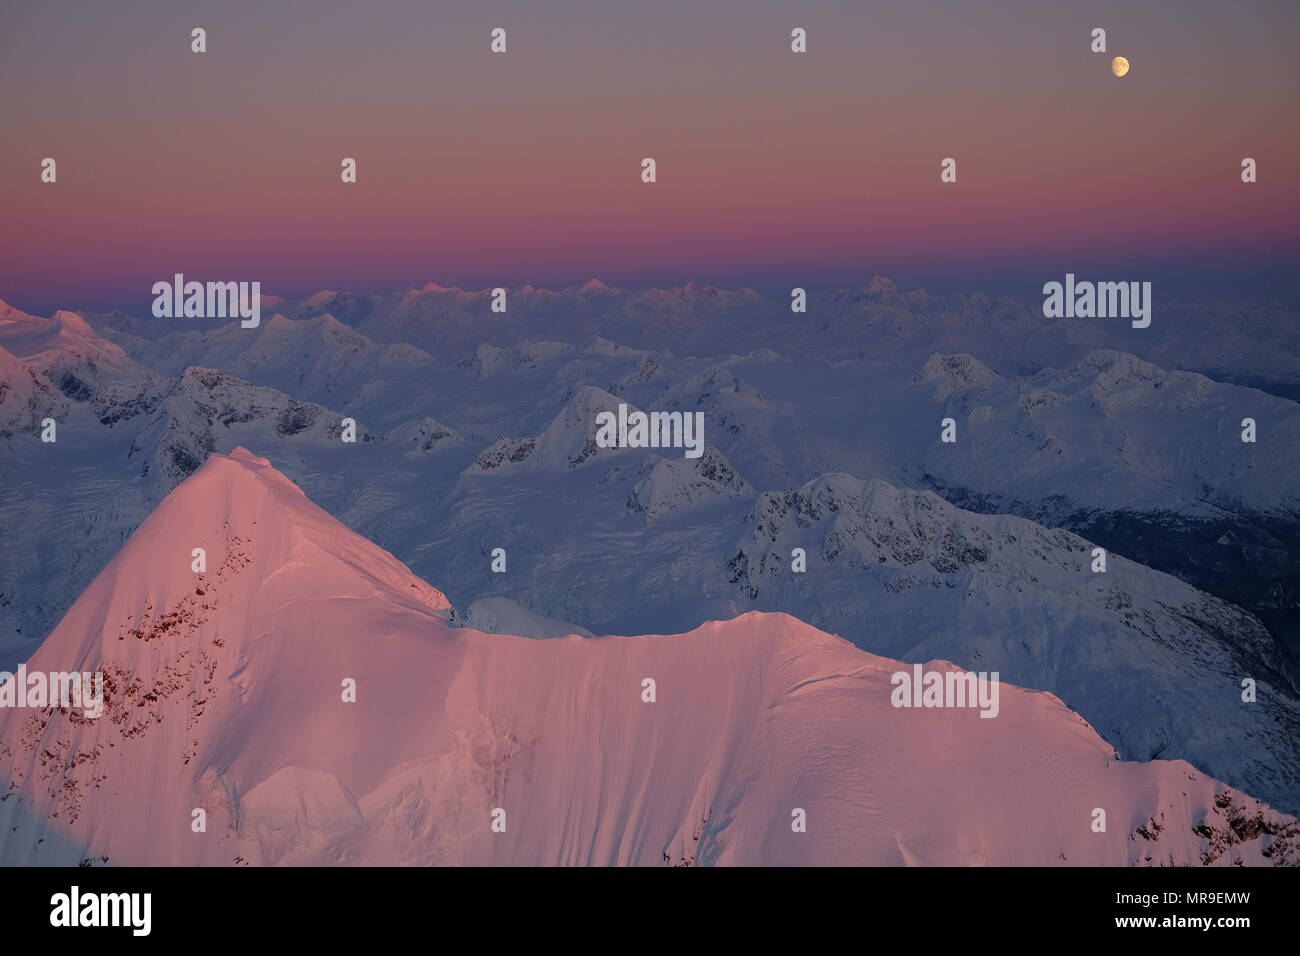 Moonrise over Peak 7368, Chugach Mountains, Alaska - Stock Image